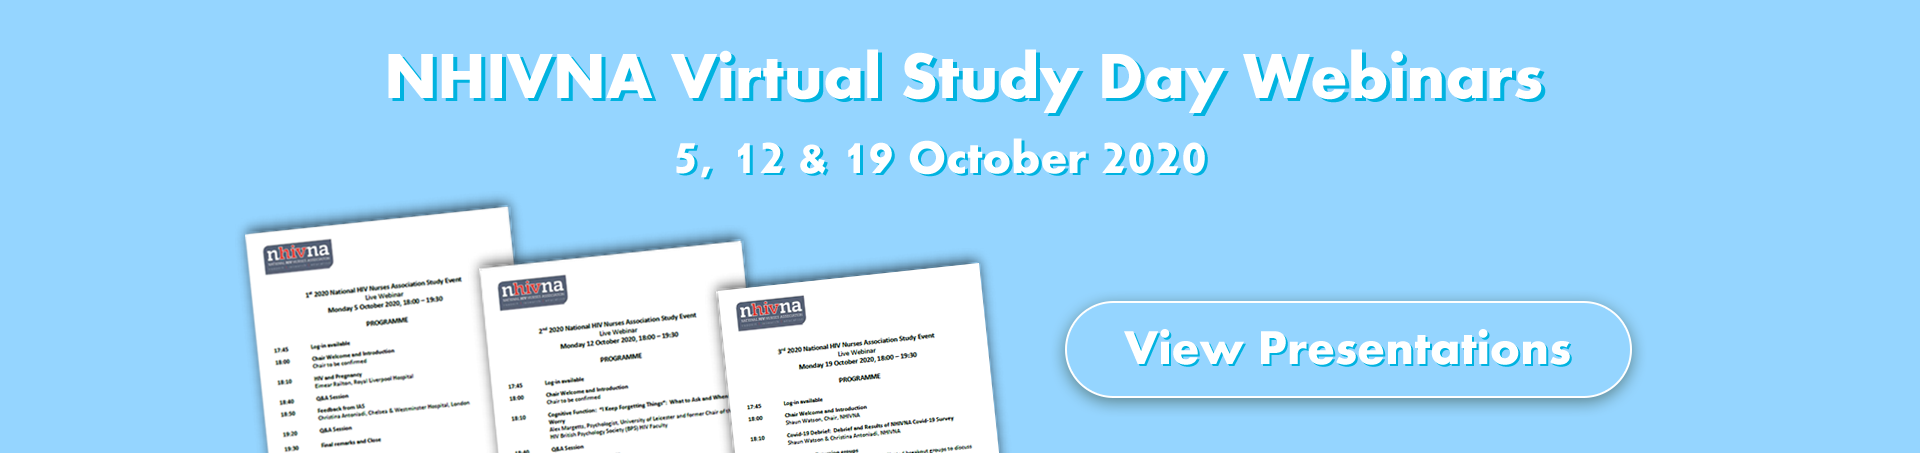 NHIVNA Virtual Study Day Webinars